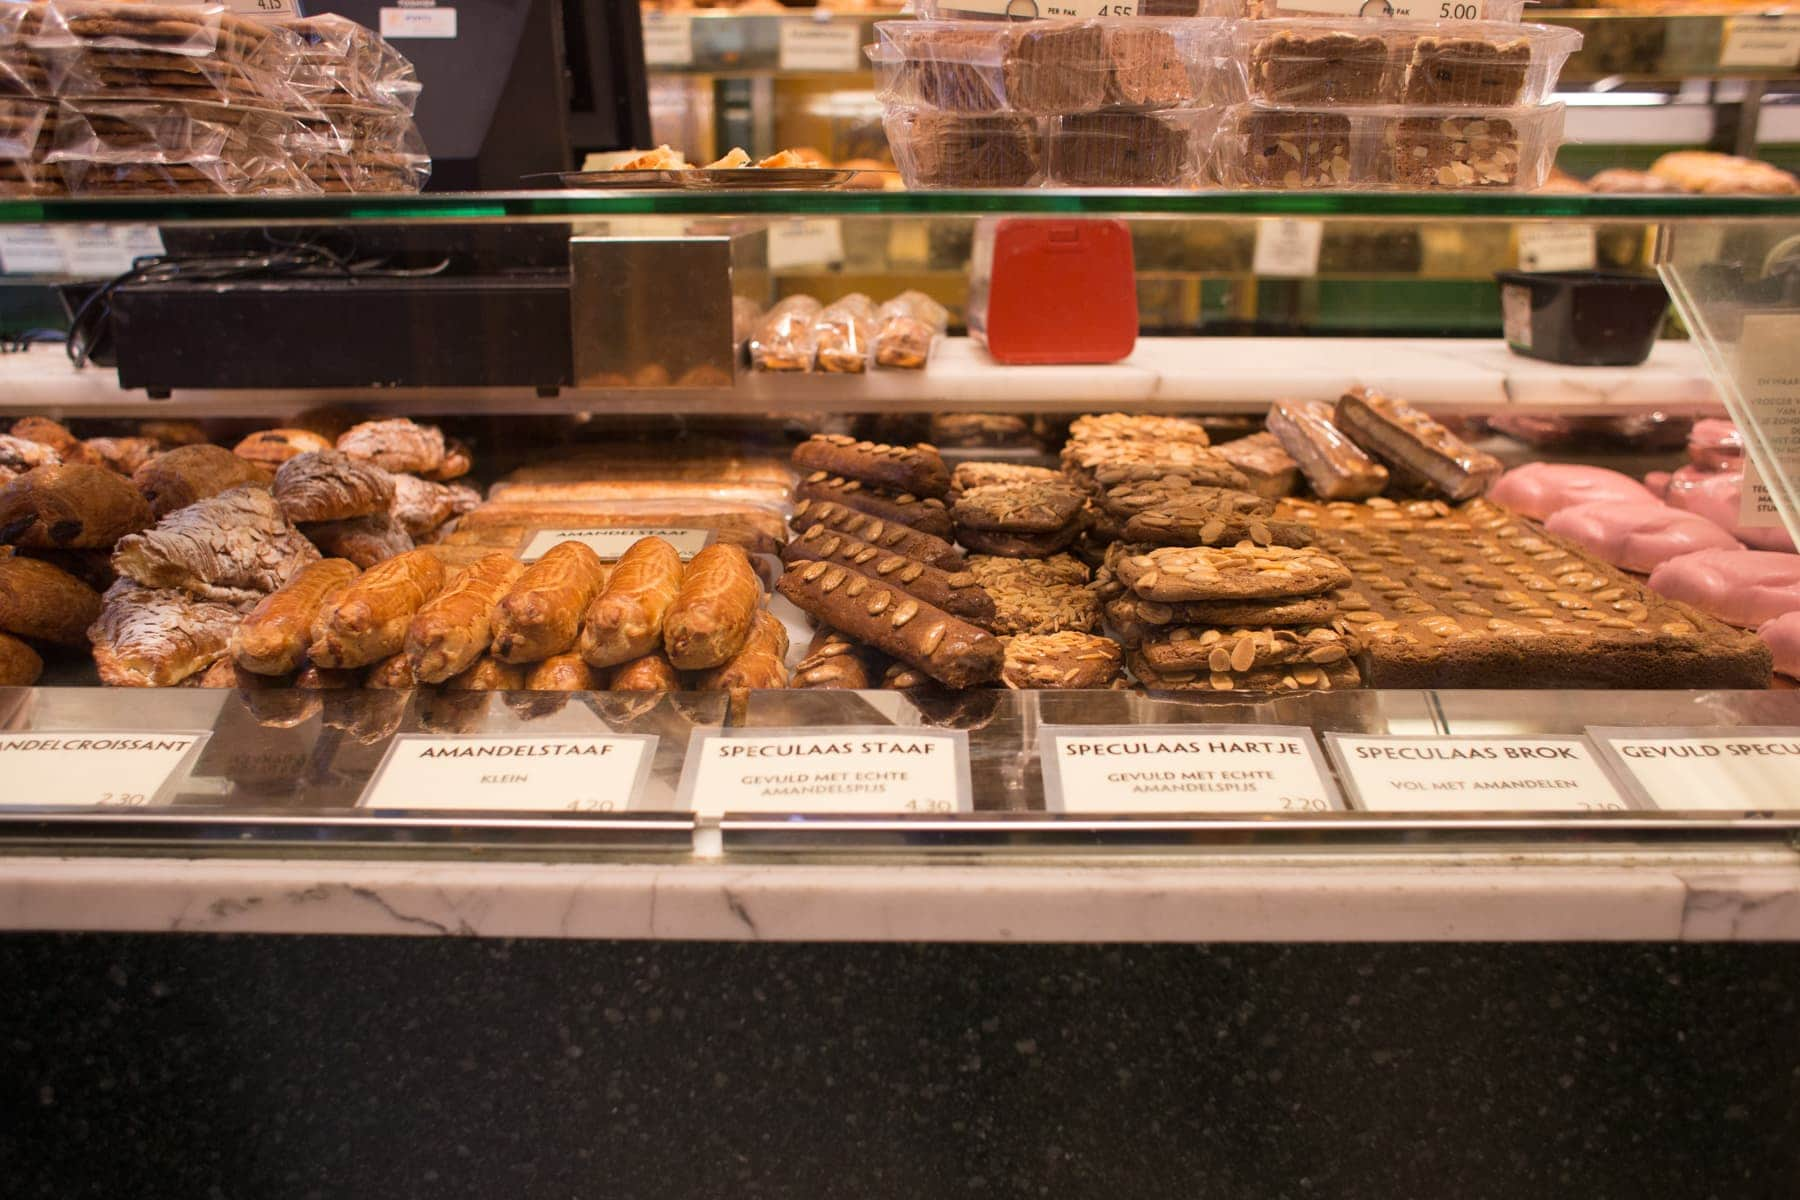 Amsterdam bakery display